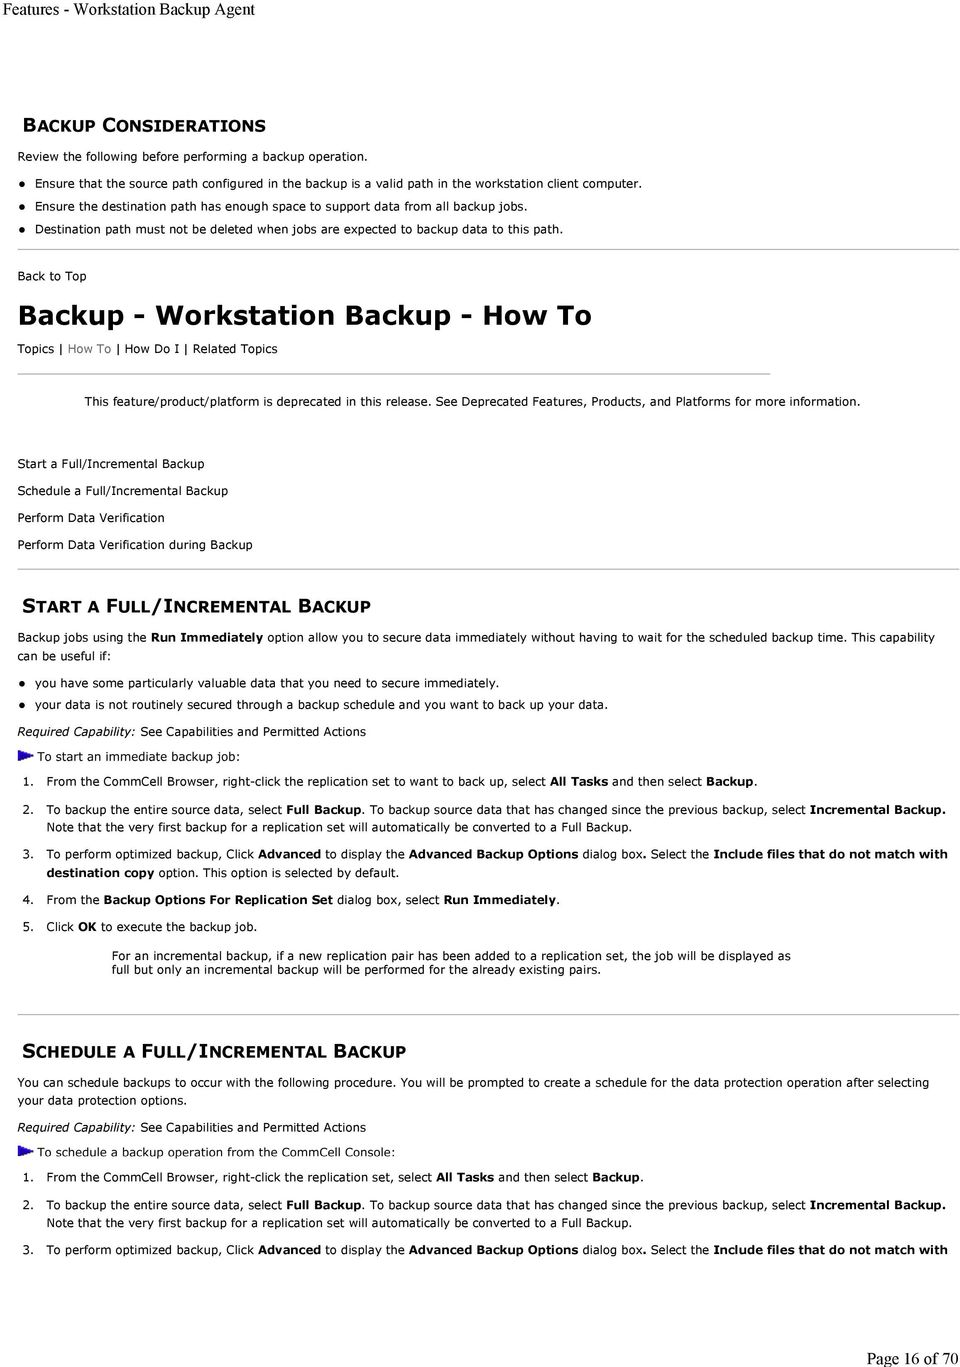 Back to Top Backup - Workstation Backup - How To Topics How To How Do I Related Topics This feature/product/platform is deprecated in this release.